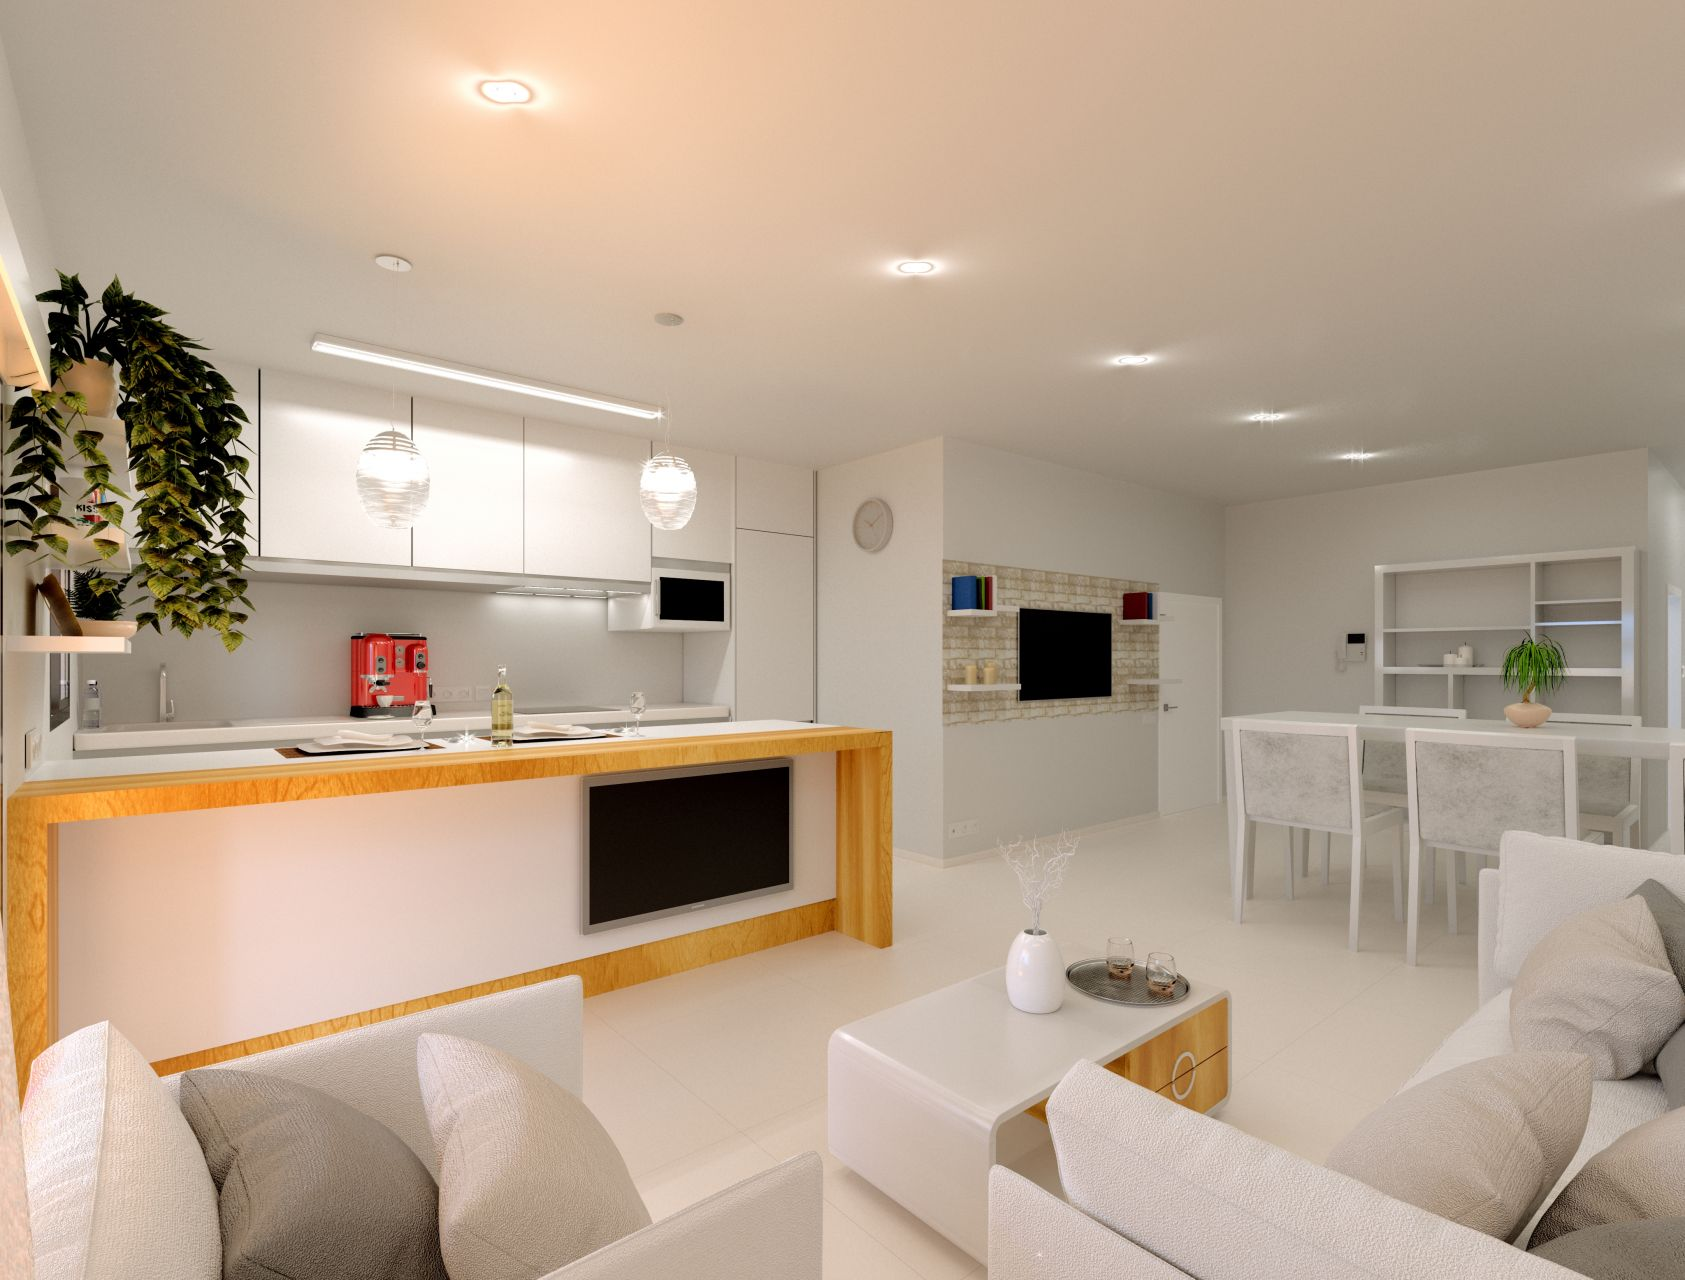 Apartments in Torrevieja 24